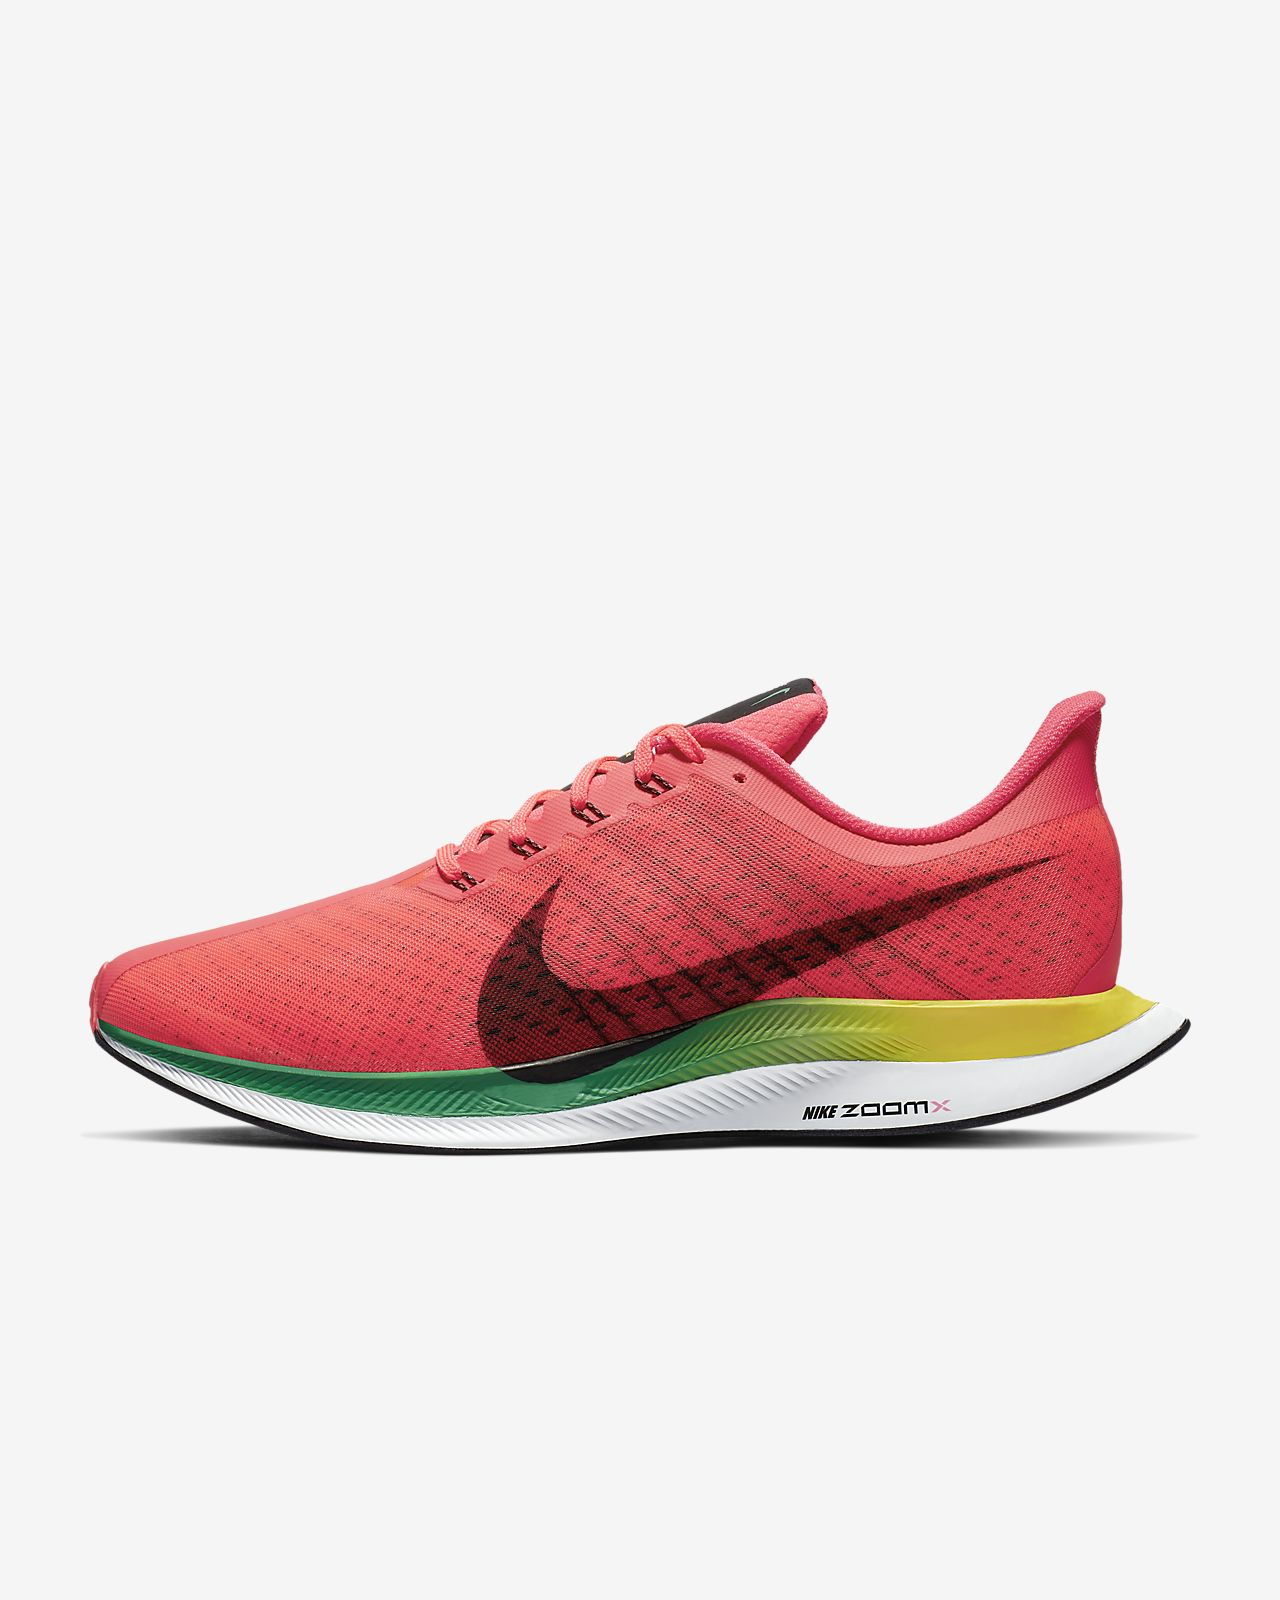 new arrival 109ec ea1a1 ... Nike Zoom Pegasus Turbo Men s Running Shoe